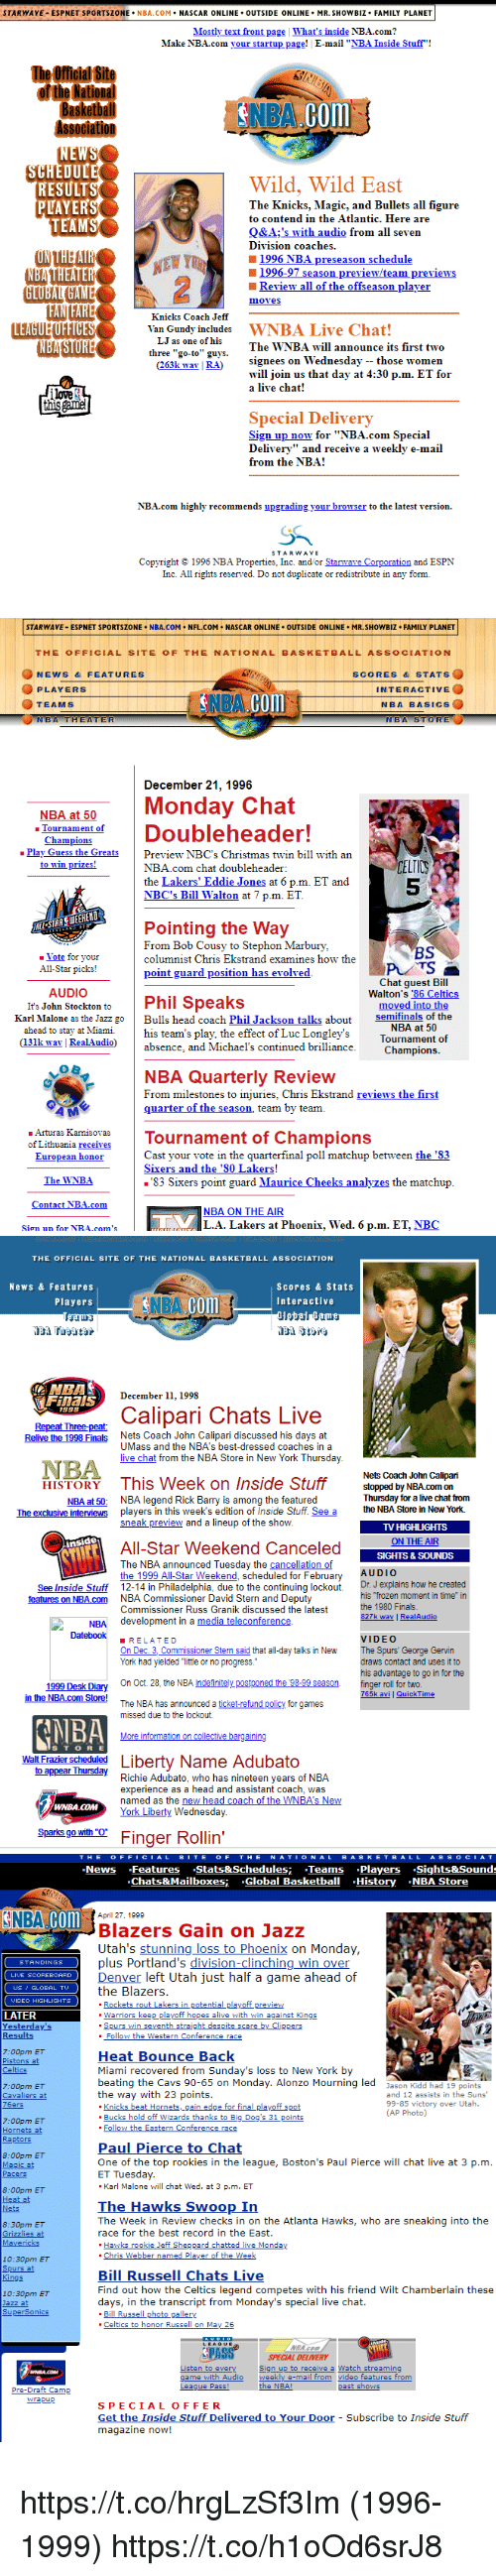 """Philadelphia 76ers, All Star, and Atlanta Hawks: STARWAVE ESPNET SPORTSZONE NBA.COM. NASCAR ONLINE OUTSIDE 0NLINE. MR. SHOWBIZ. FAMILY PLANET  Mostly text front page 